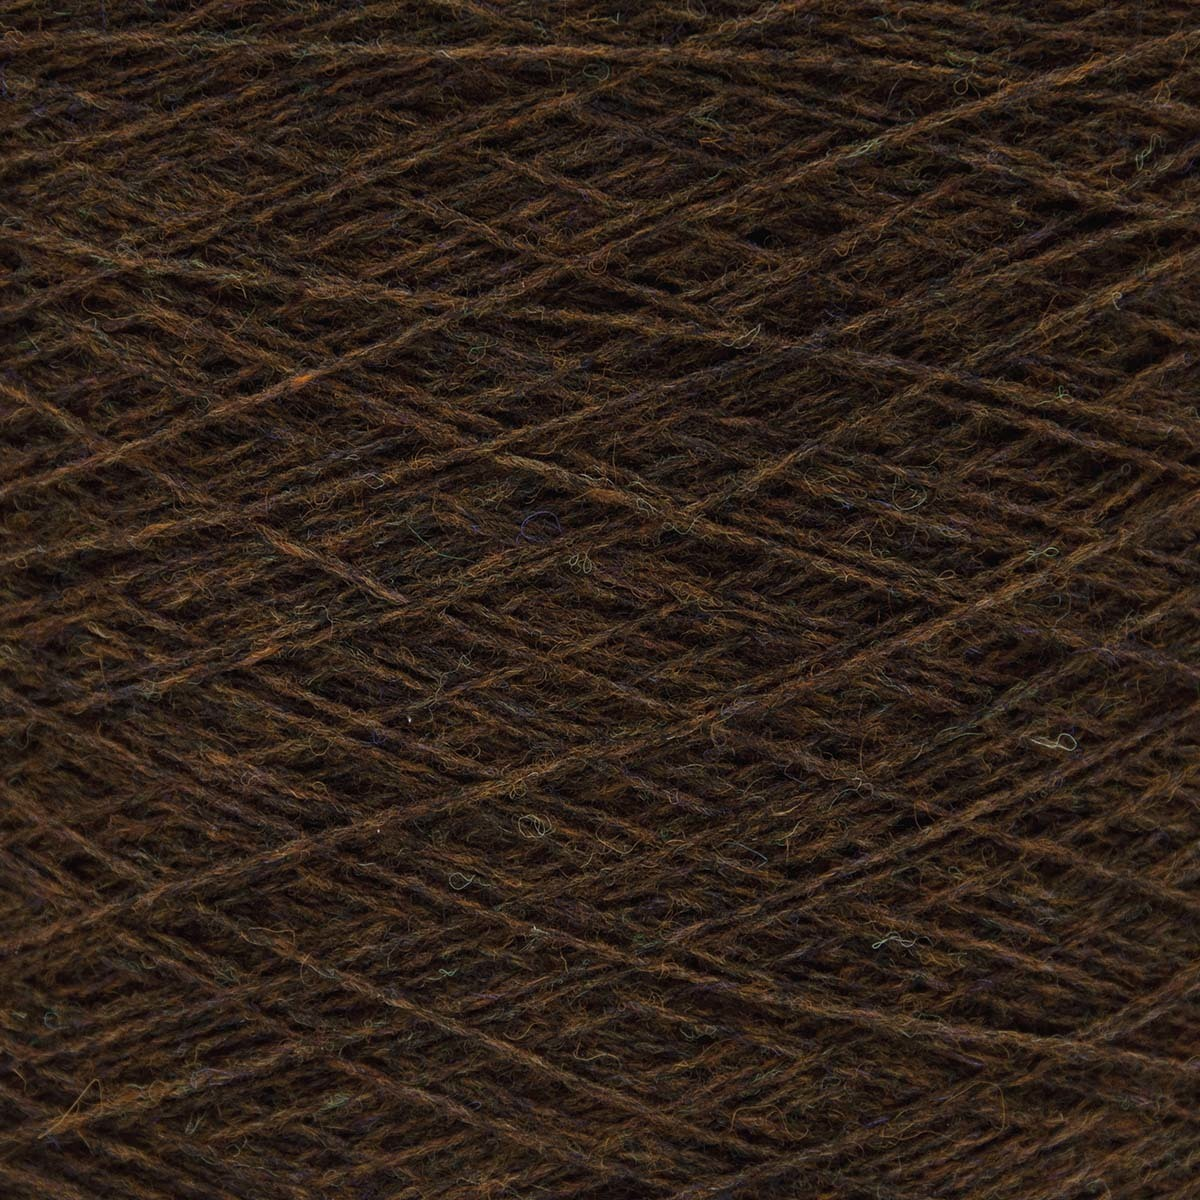 Knoll Yarns Supersoft - 137